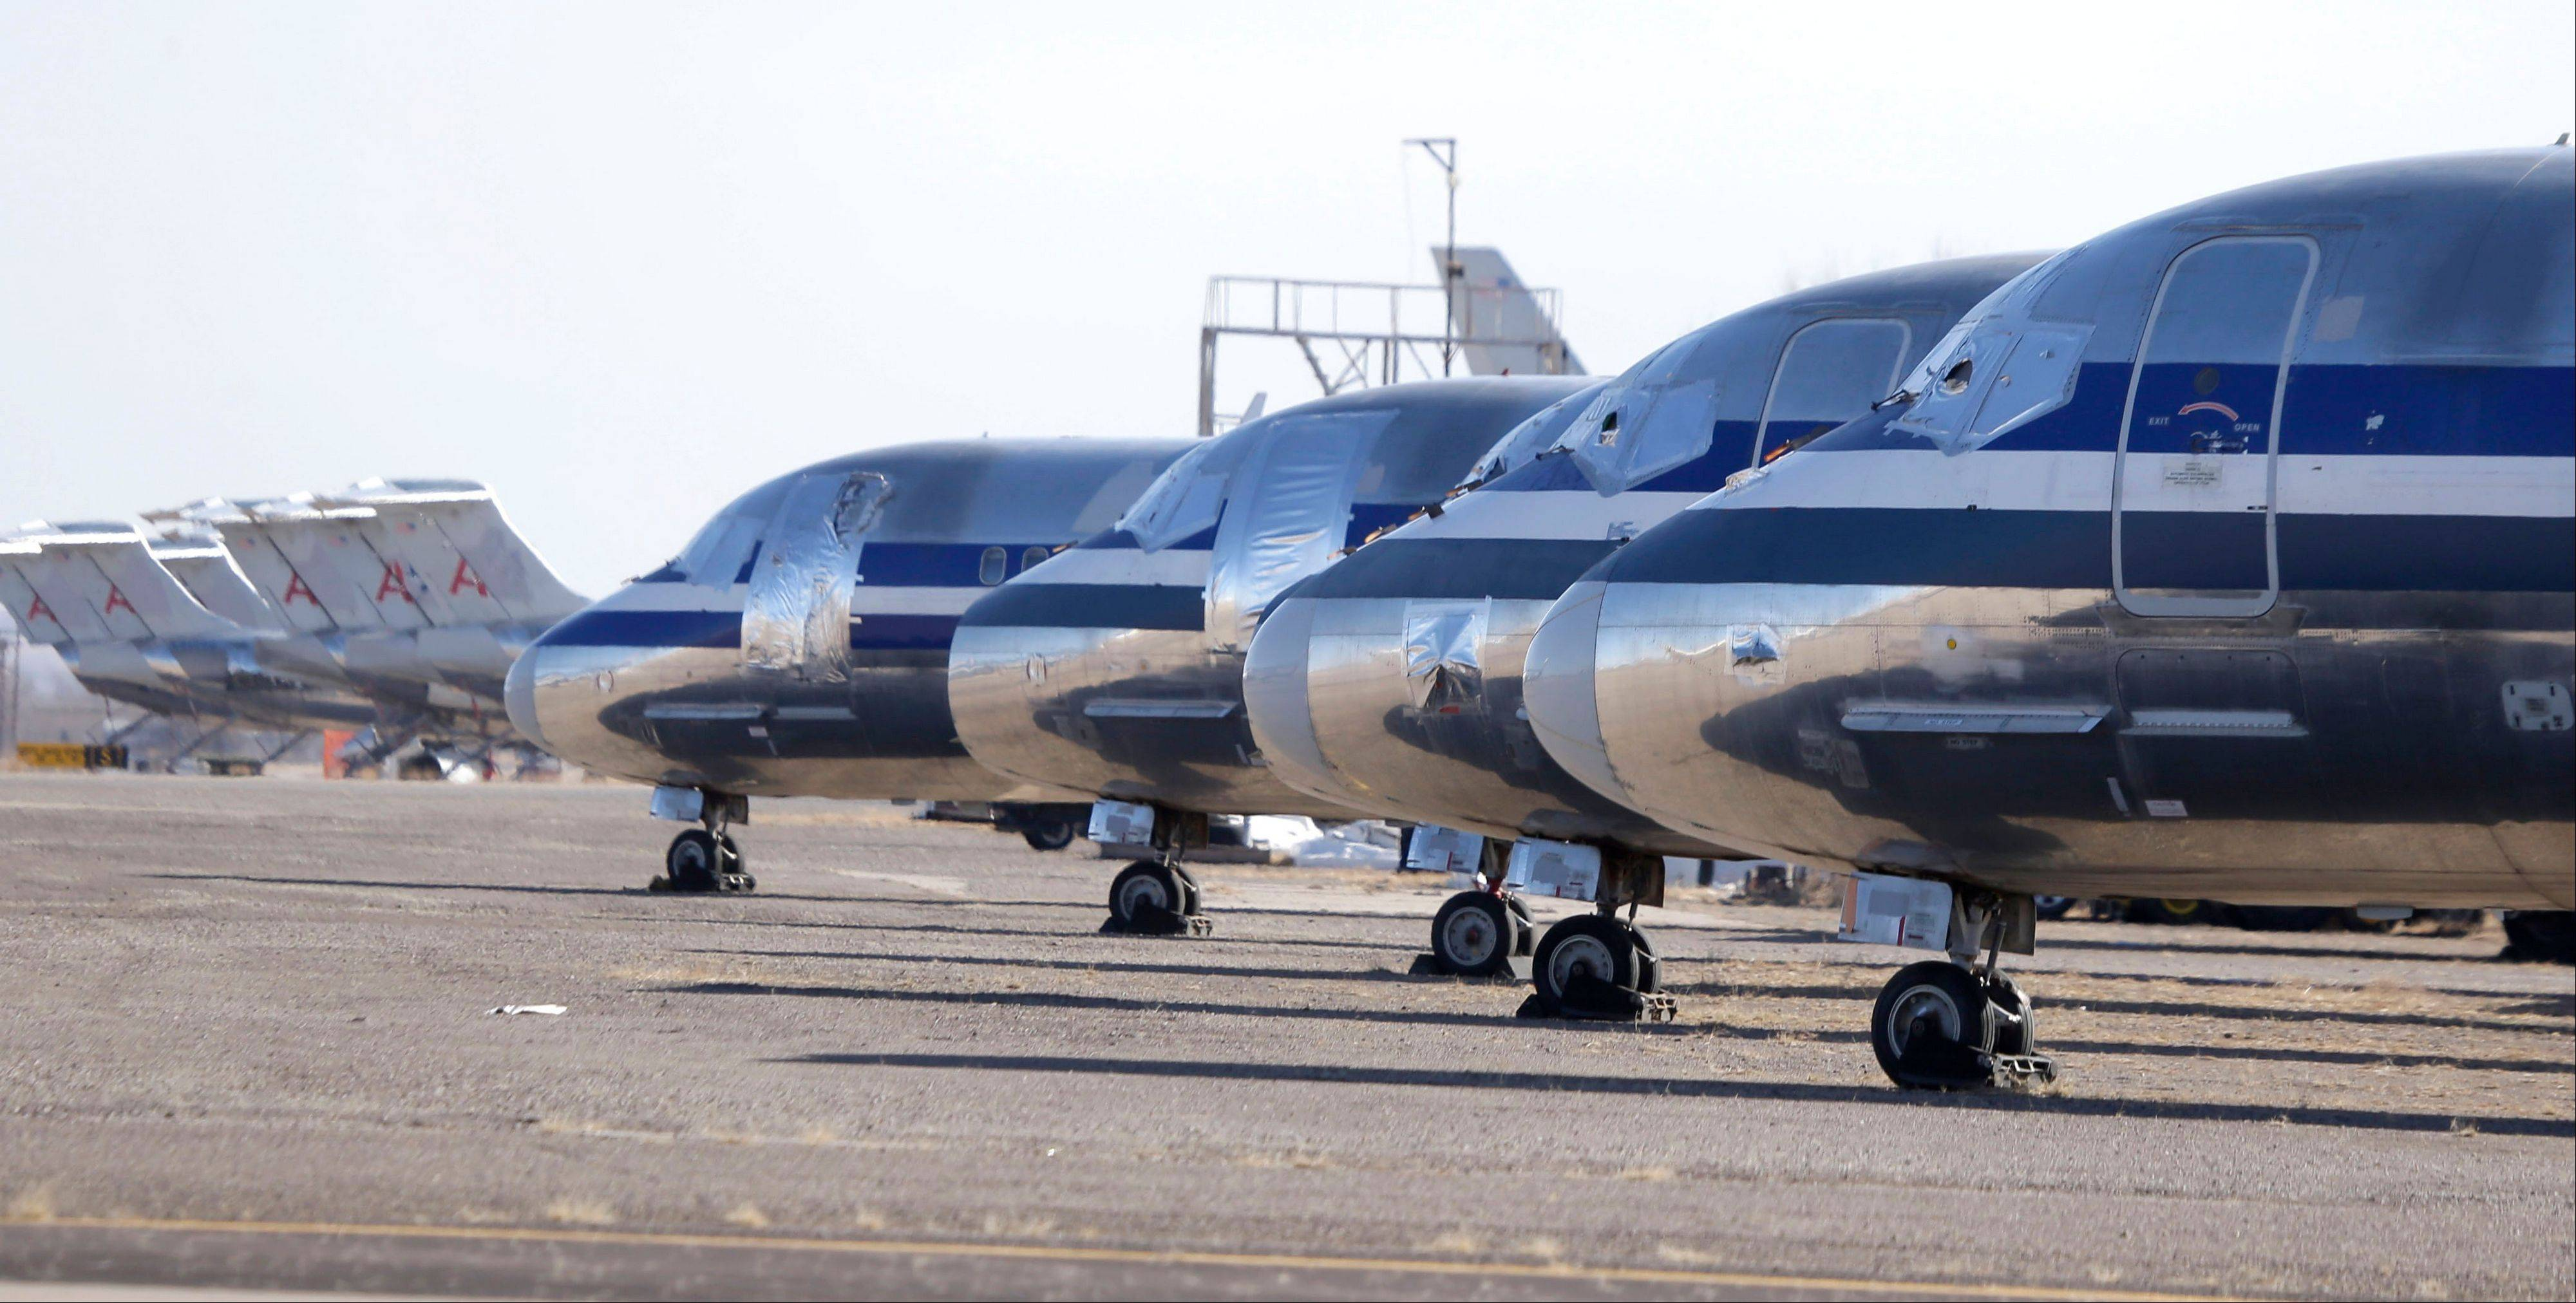 Retired airliners sit parked at the airport in Roswell, New Mexico.